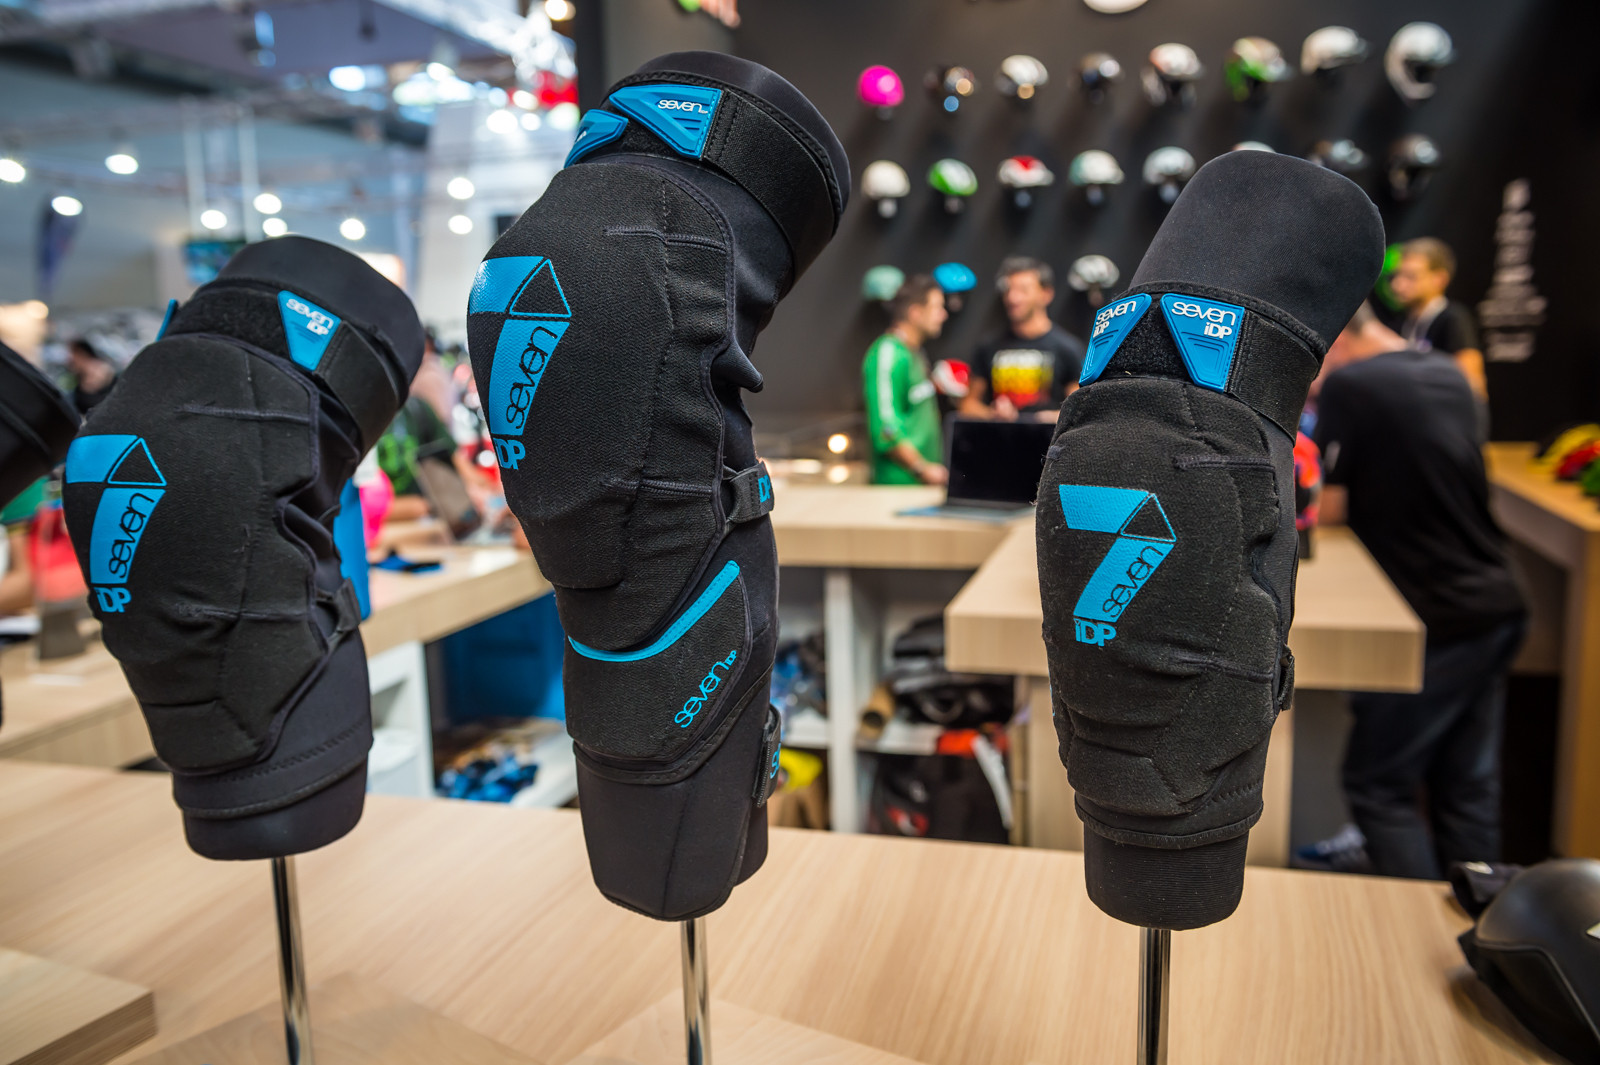 2016 7 Protection at Eurobike - 2016 Mountain Bike Apparel & Protection at Eurobike - Mountain Biking Pictures - Vital MTB